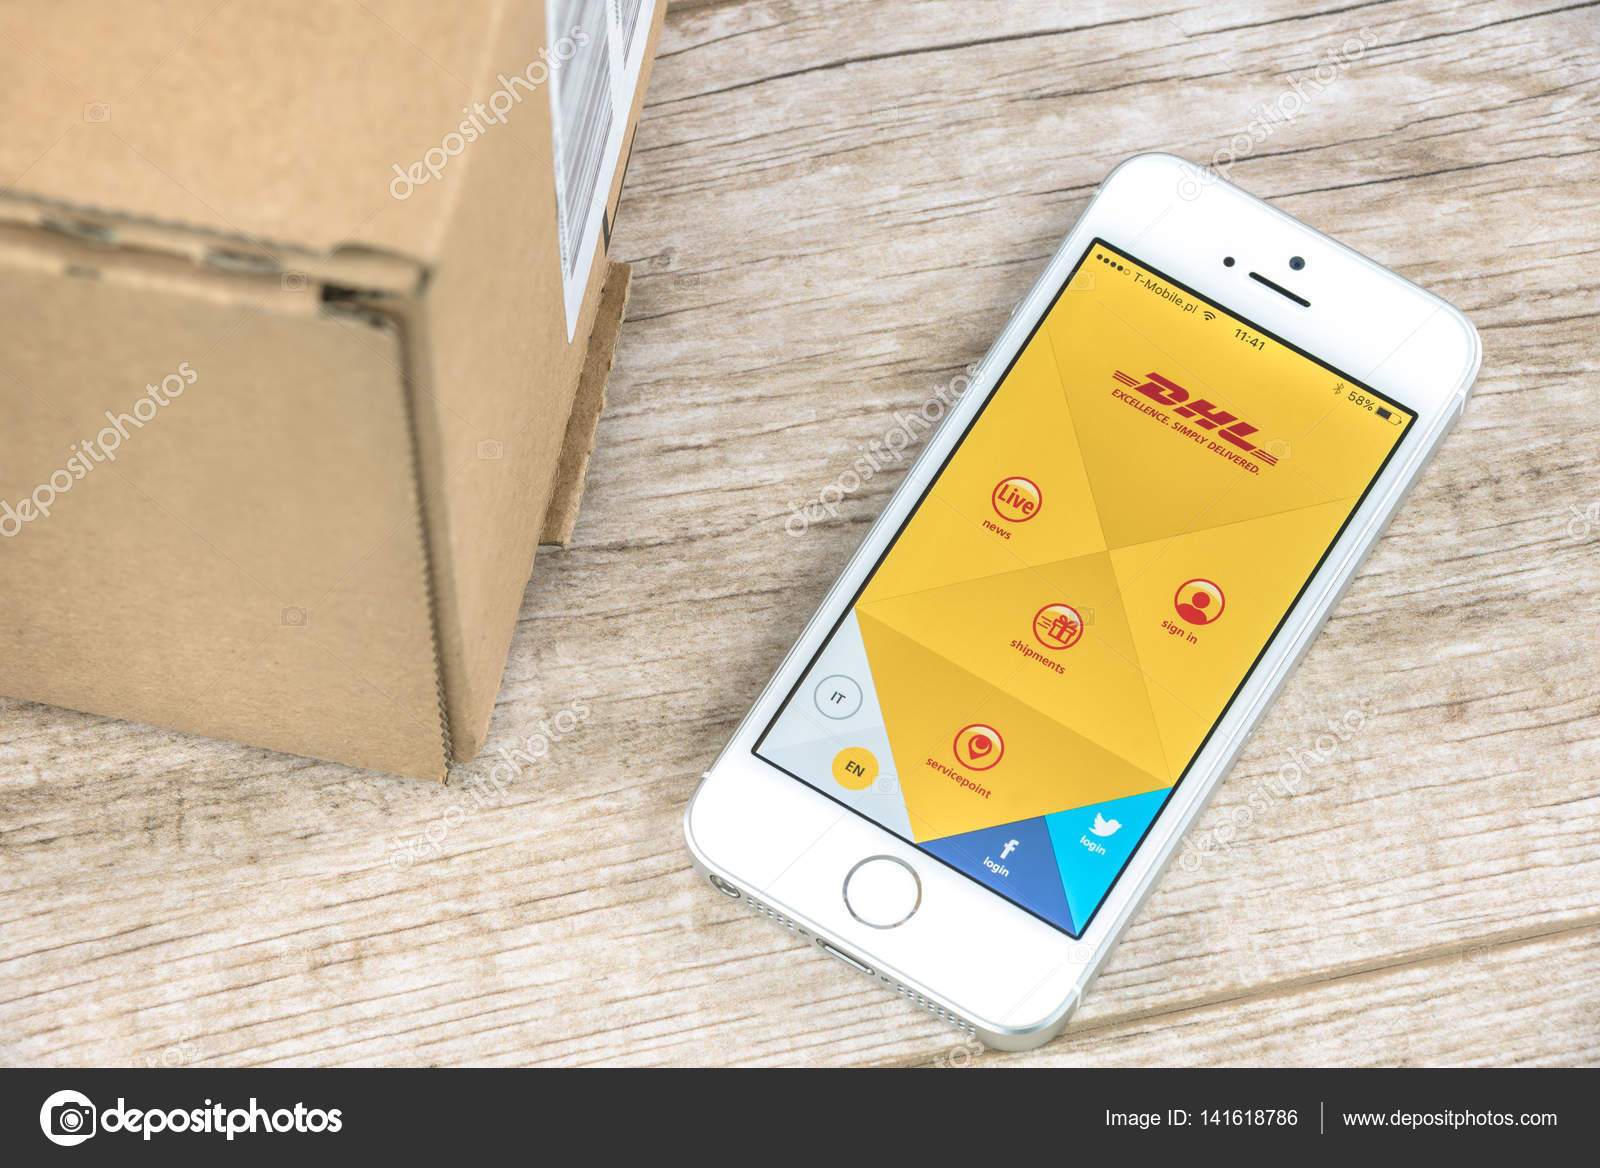 DHL app on iPhone – Stock Editorial Photo © wdnet #141618786